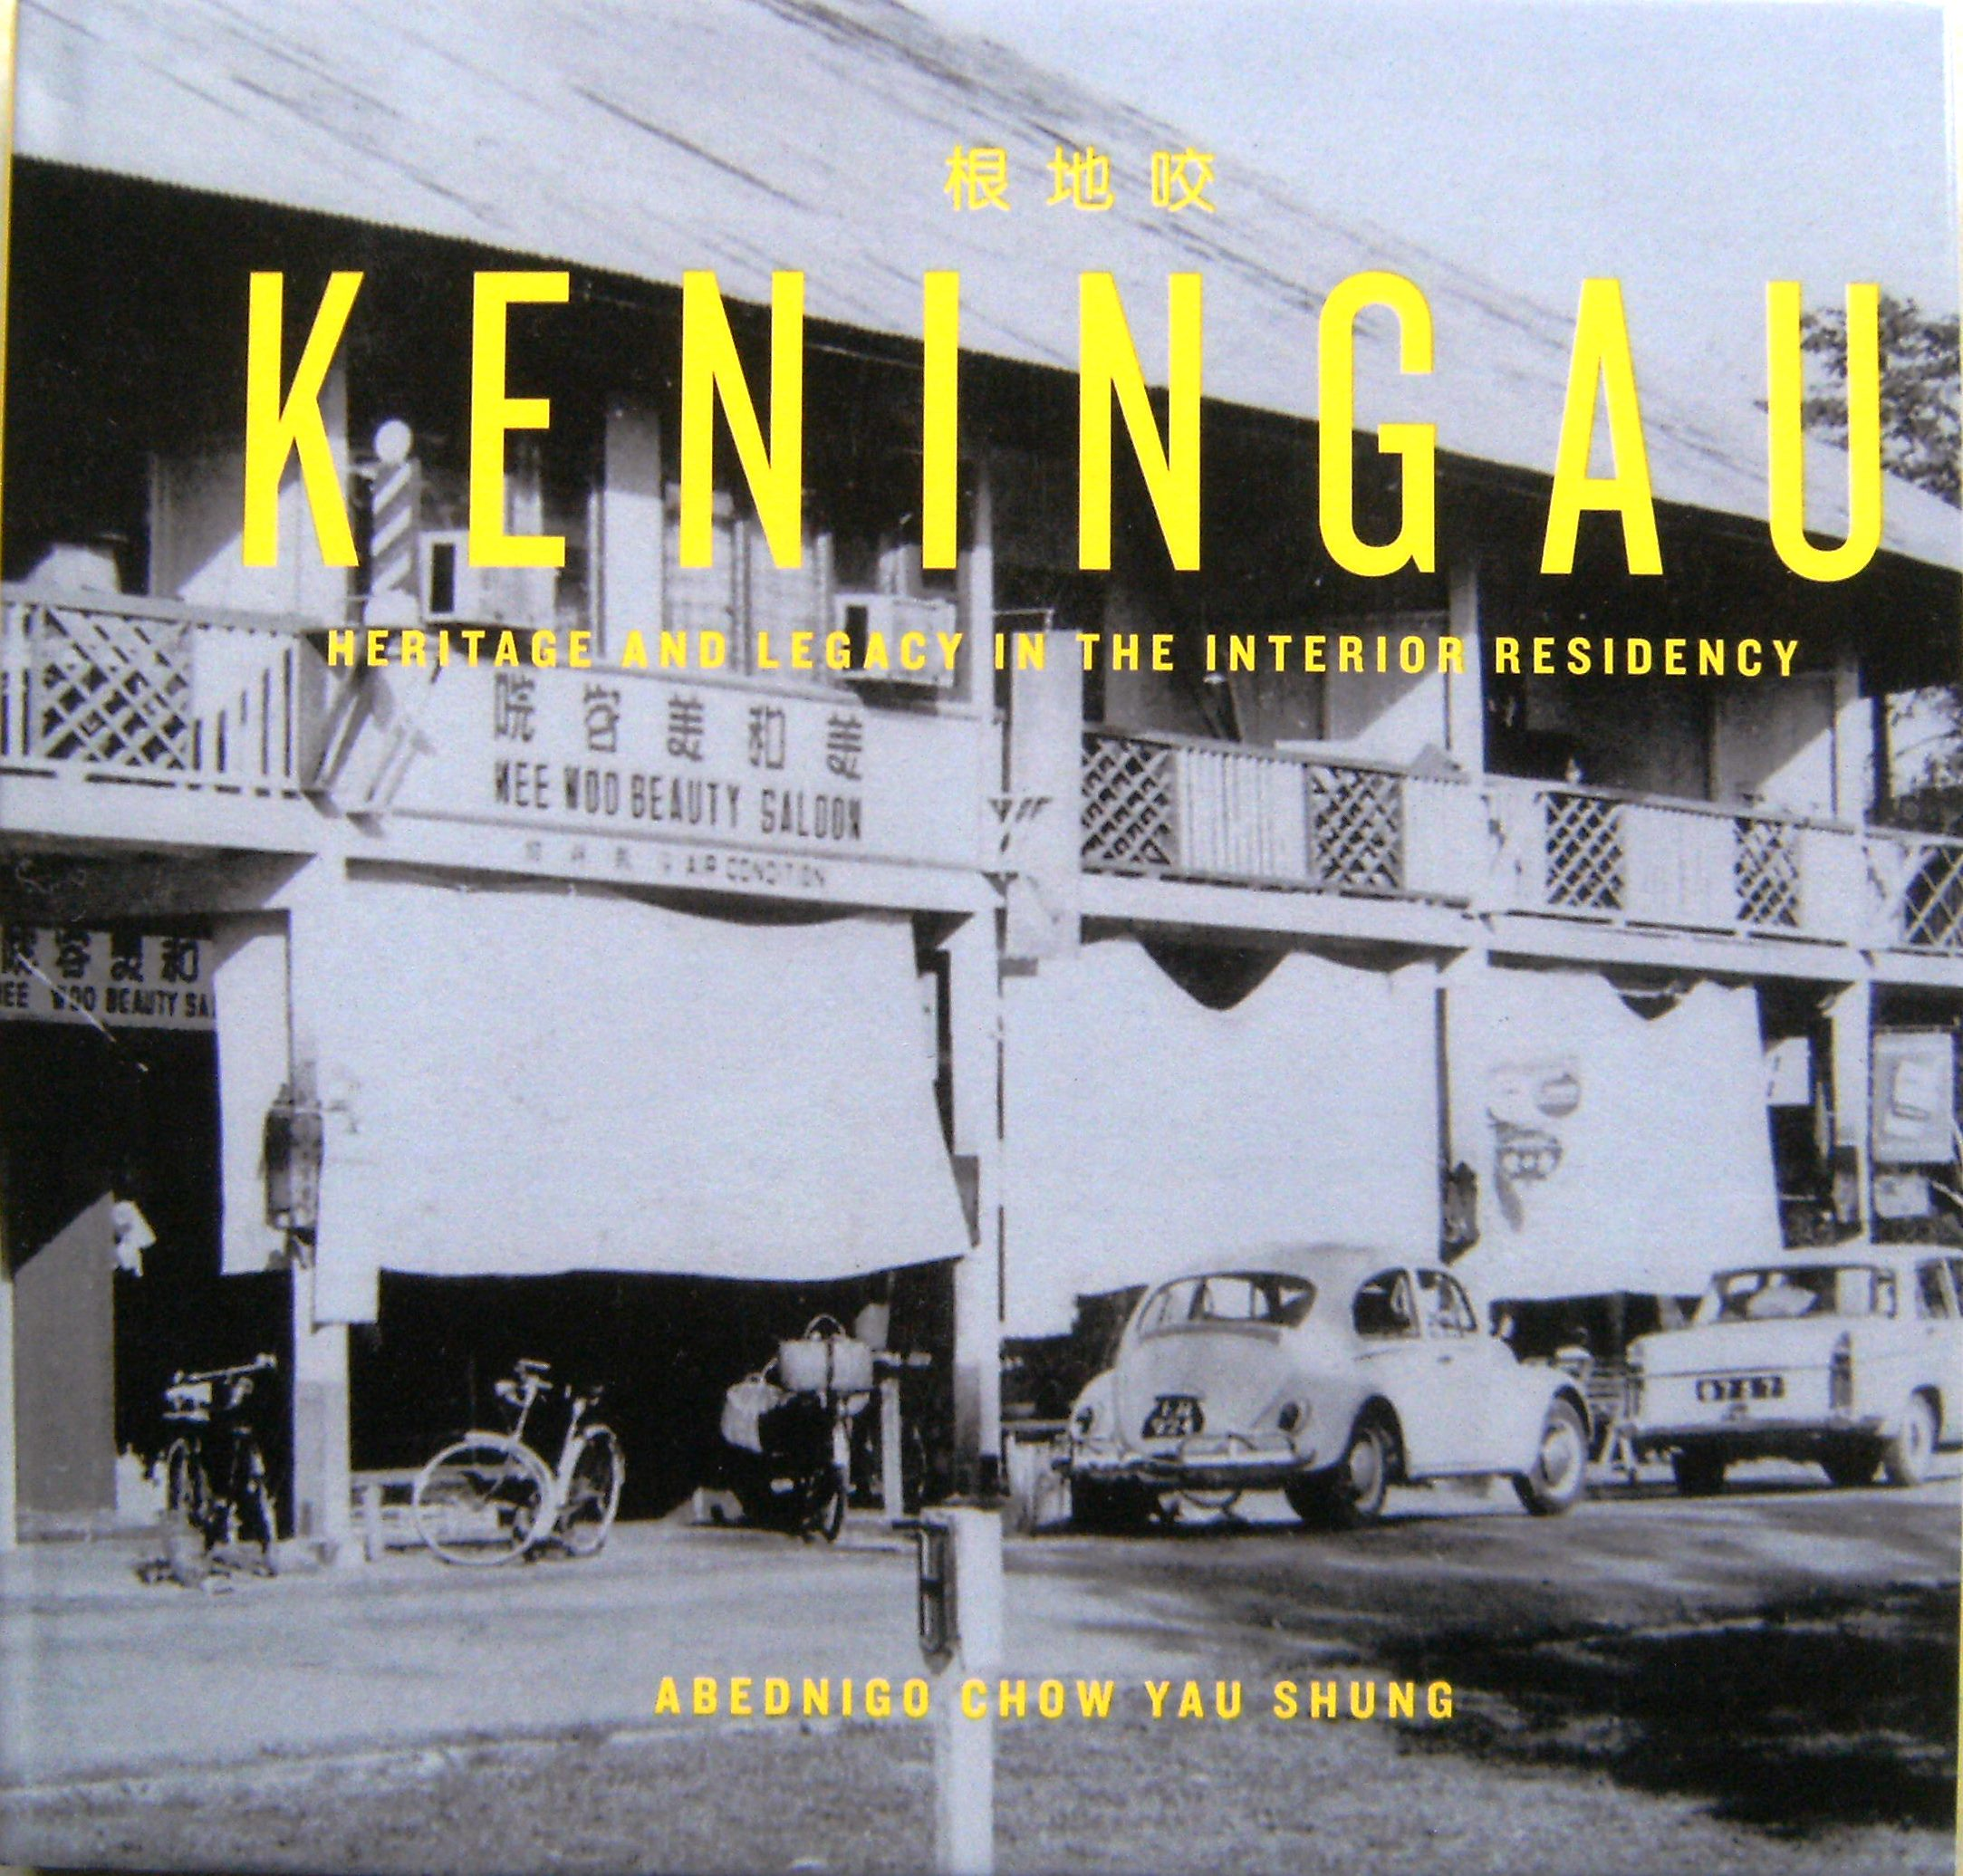 Image for Keningau - Heritage and Legacy in the Interior Residency